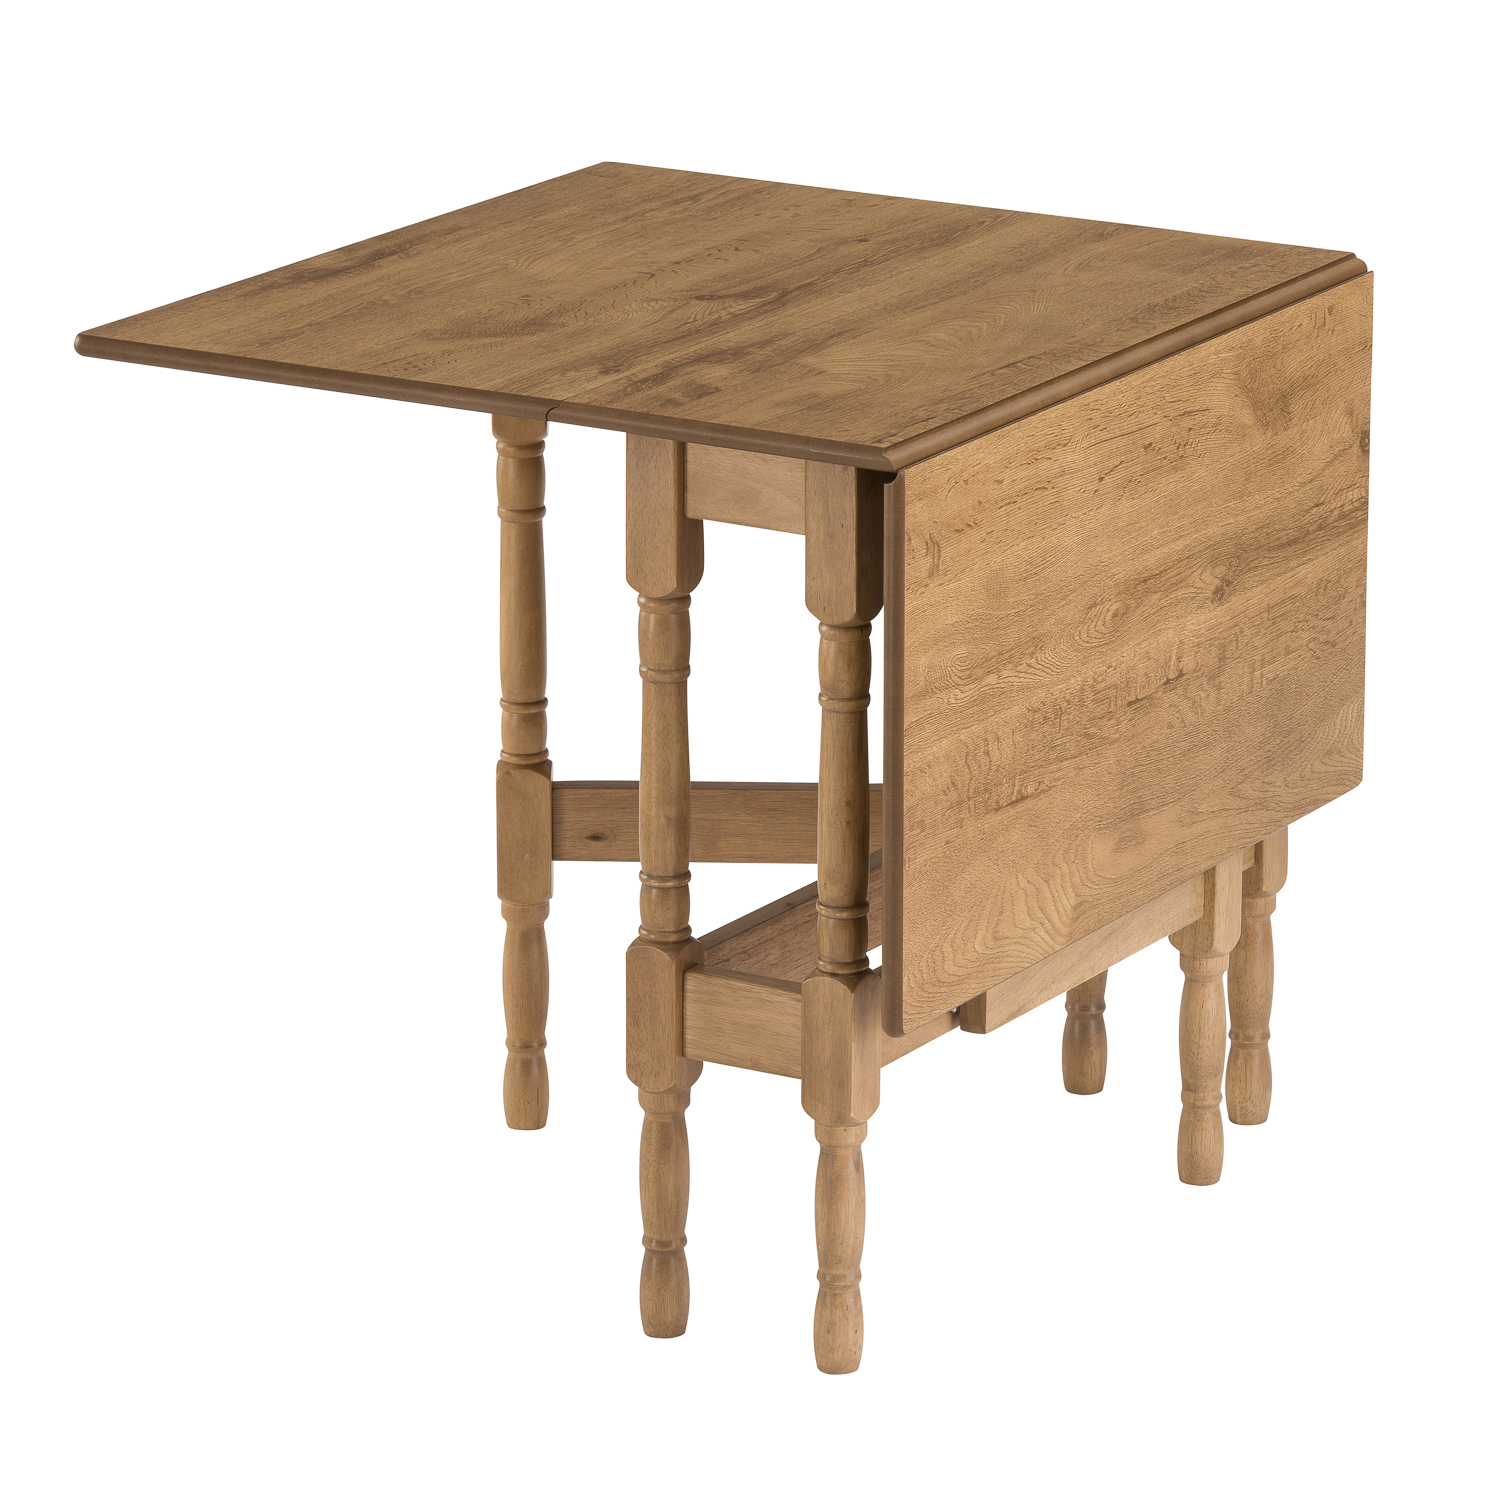 Drop leaf table heatproof folding dining kitchen gateleg for Rectangular drop leaf dining table